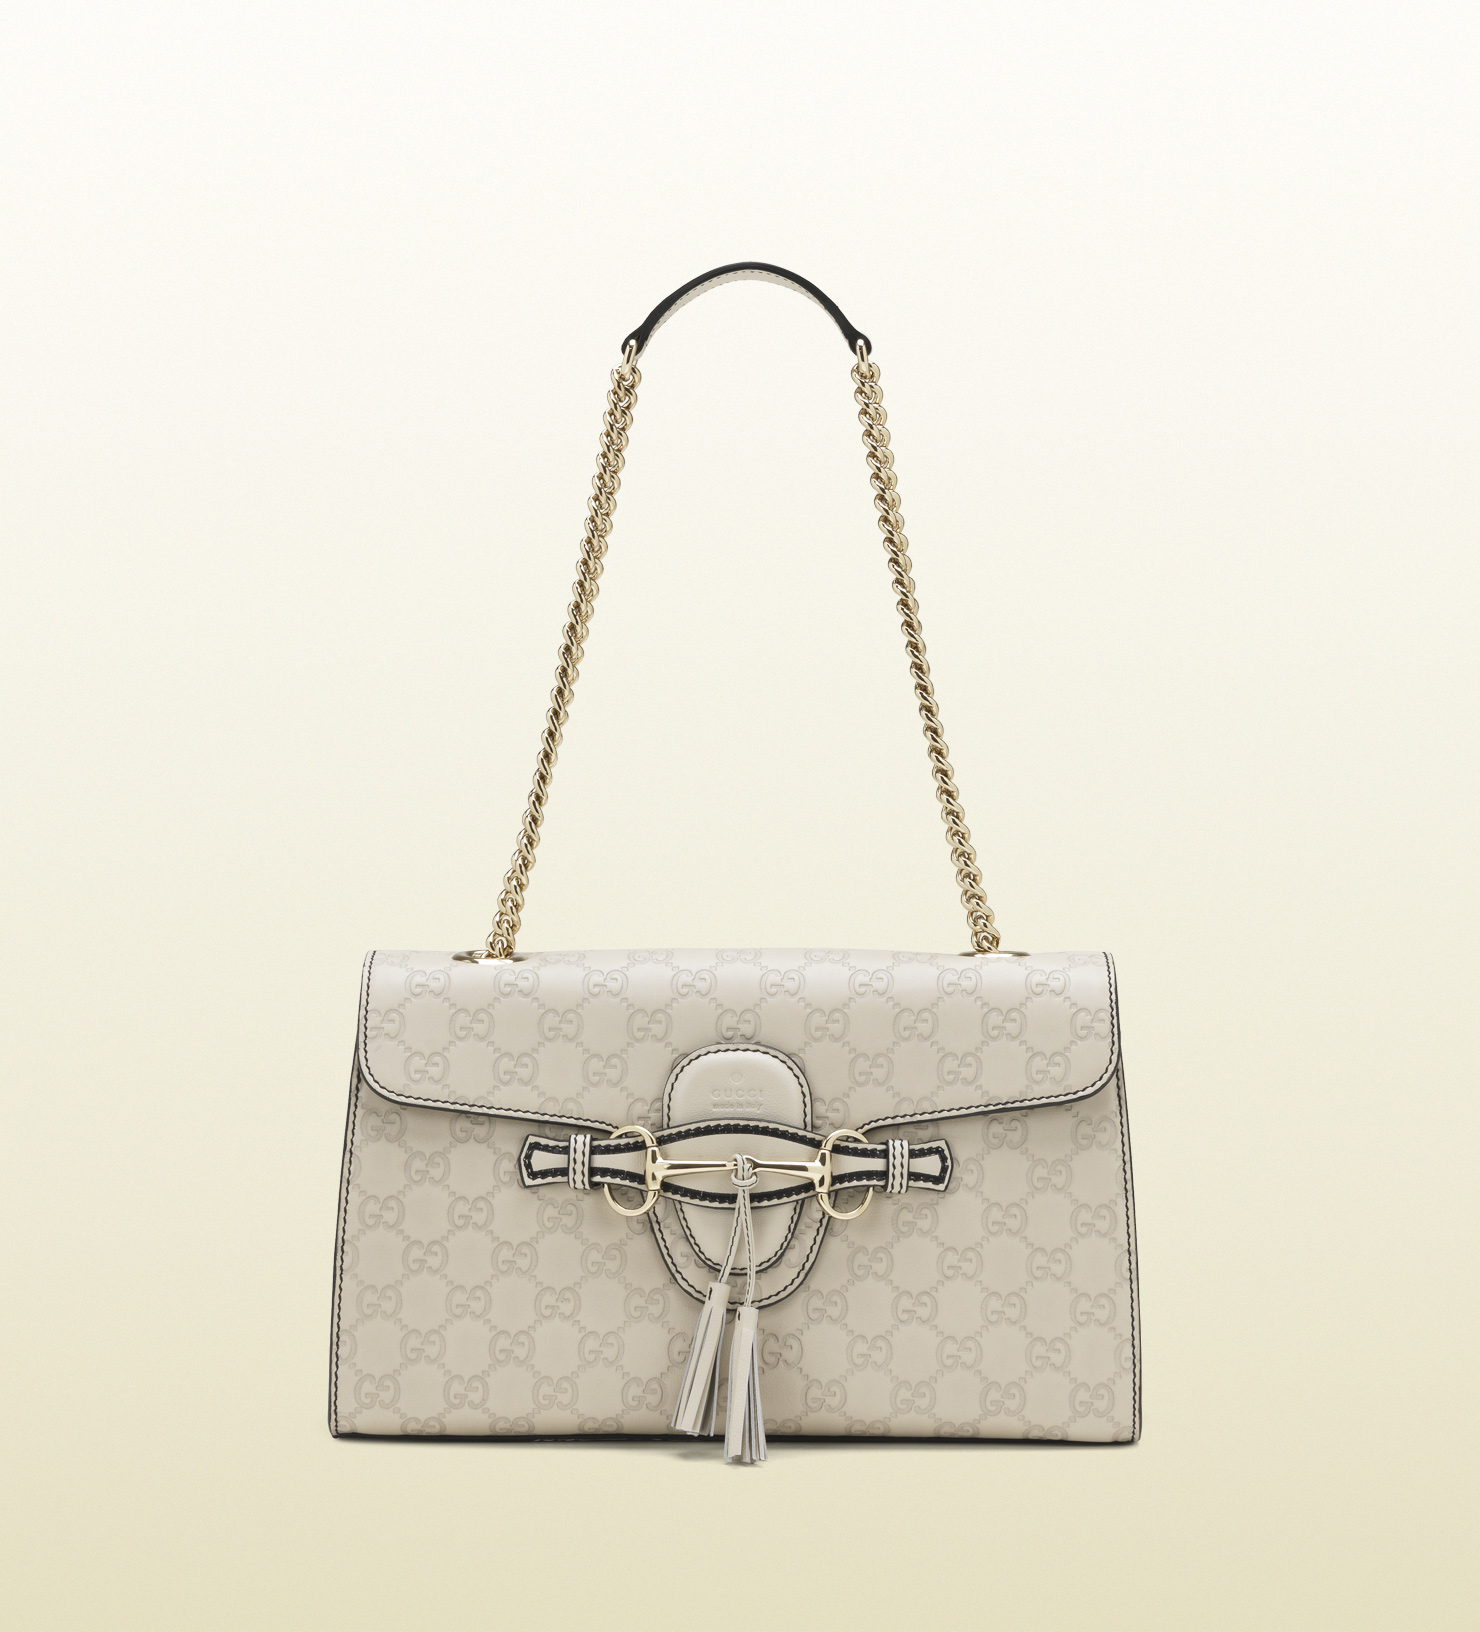 51b77350302 Lyst - Gucci Emily Ssima Leather Chain Shoulder Bag in Natural